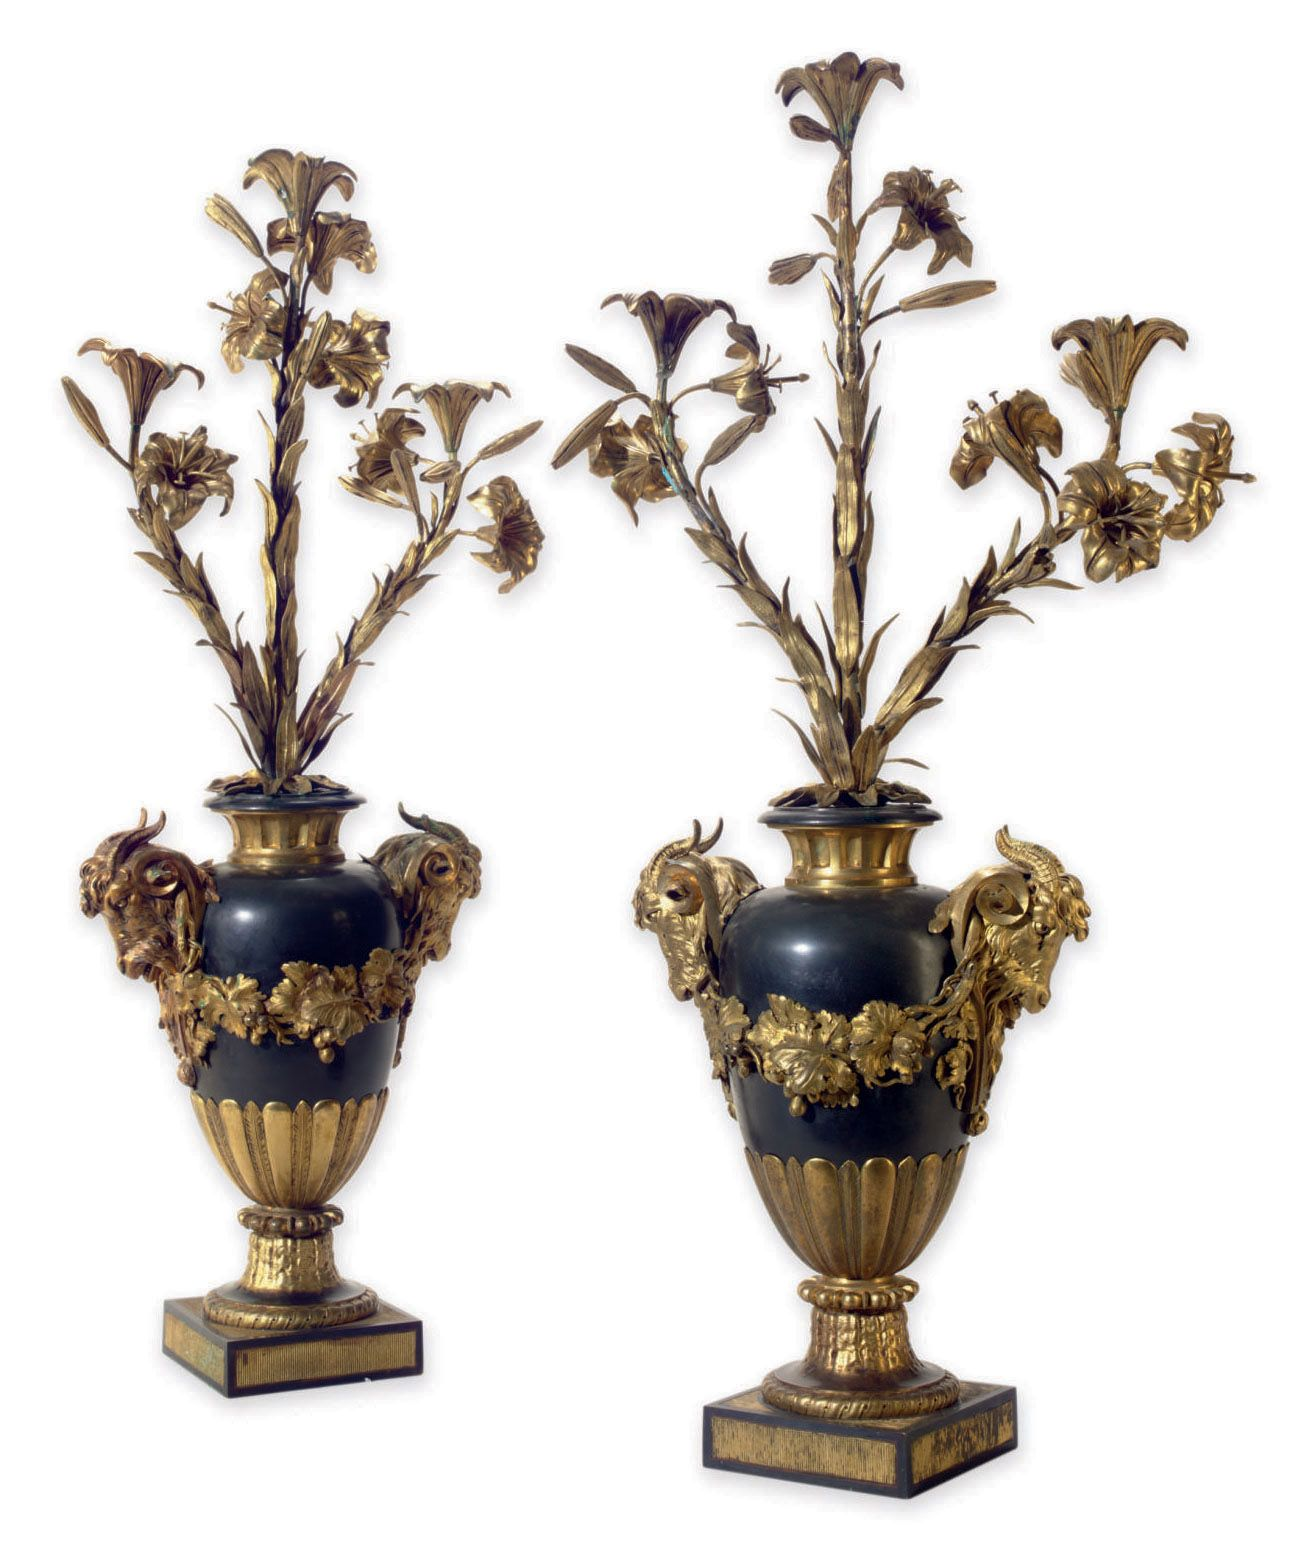 date unspecified A PAIR OF NORTH EUROPEAN ORMOLU AND